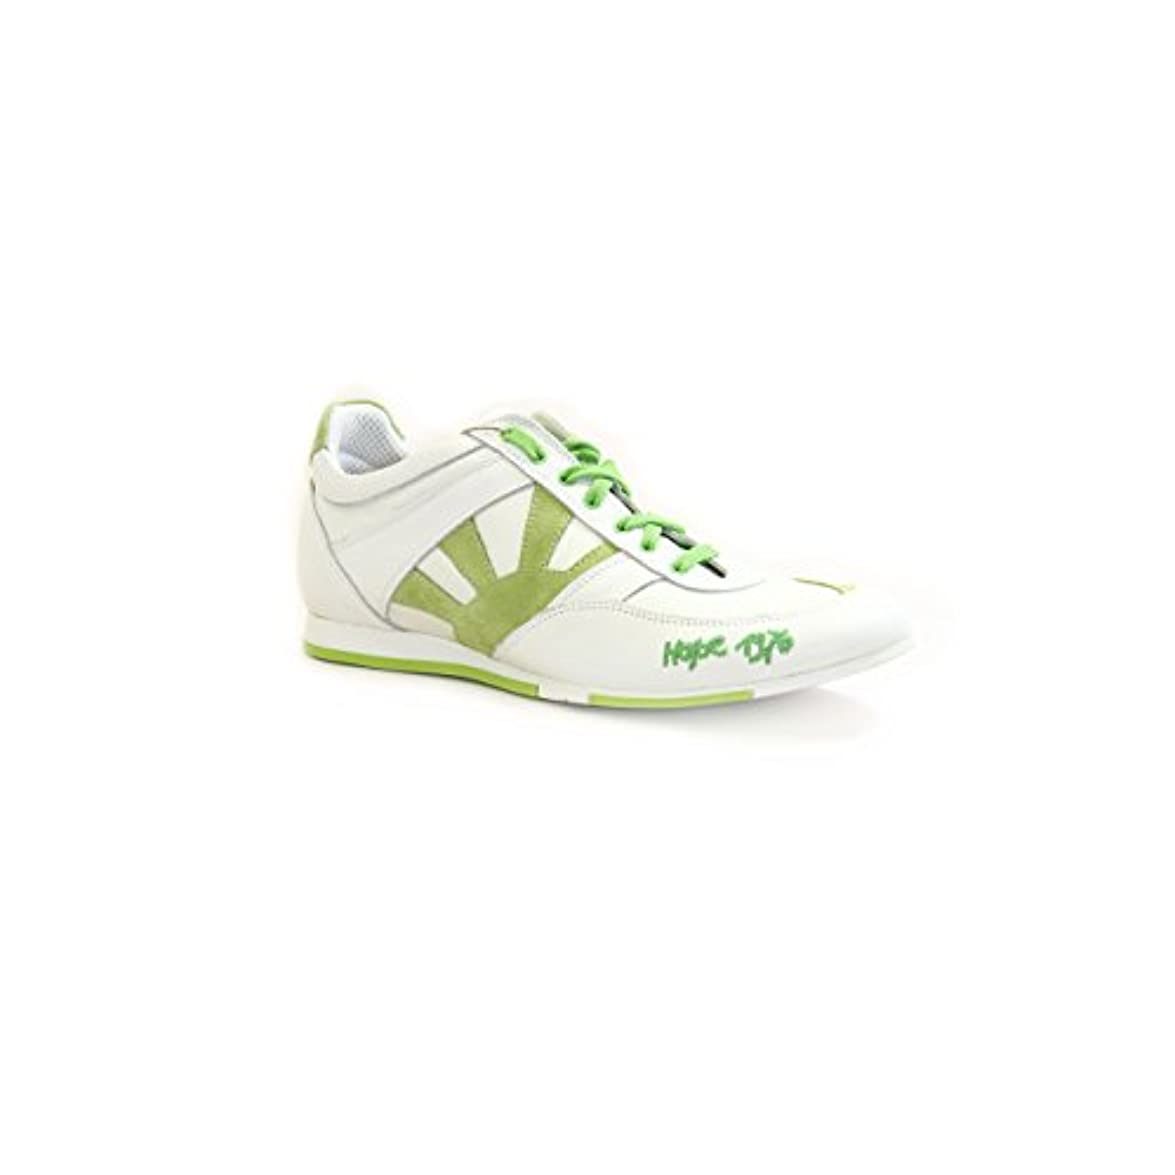 Kejo Nagoya Leather And Mesh Women Sneakers